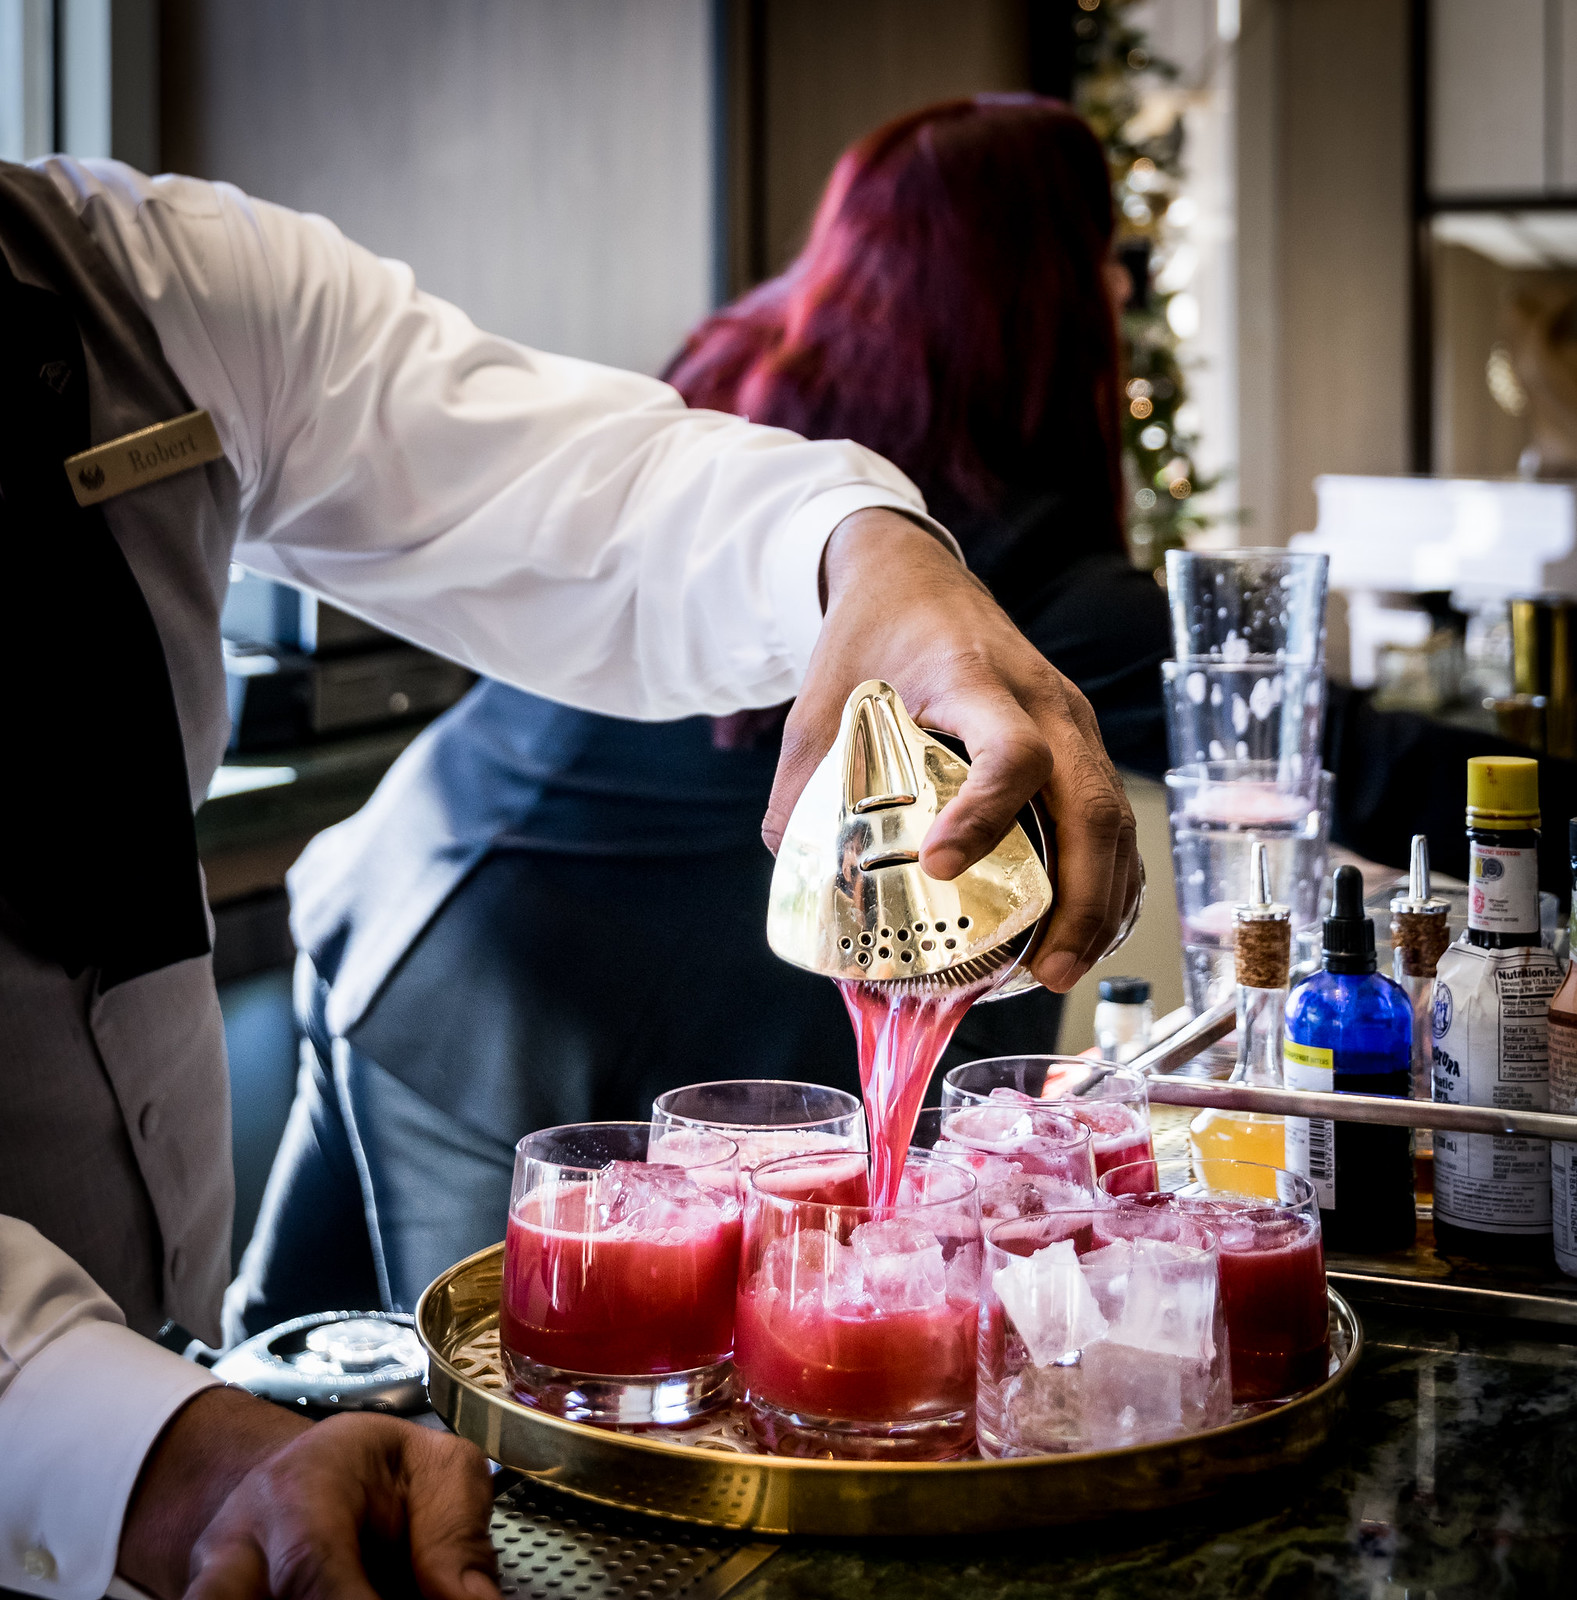 Robert pouring a round of Cortez cocktails: tequila & mezcal, hibiscus syrup, lemon,  and orange bitters